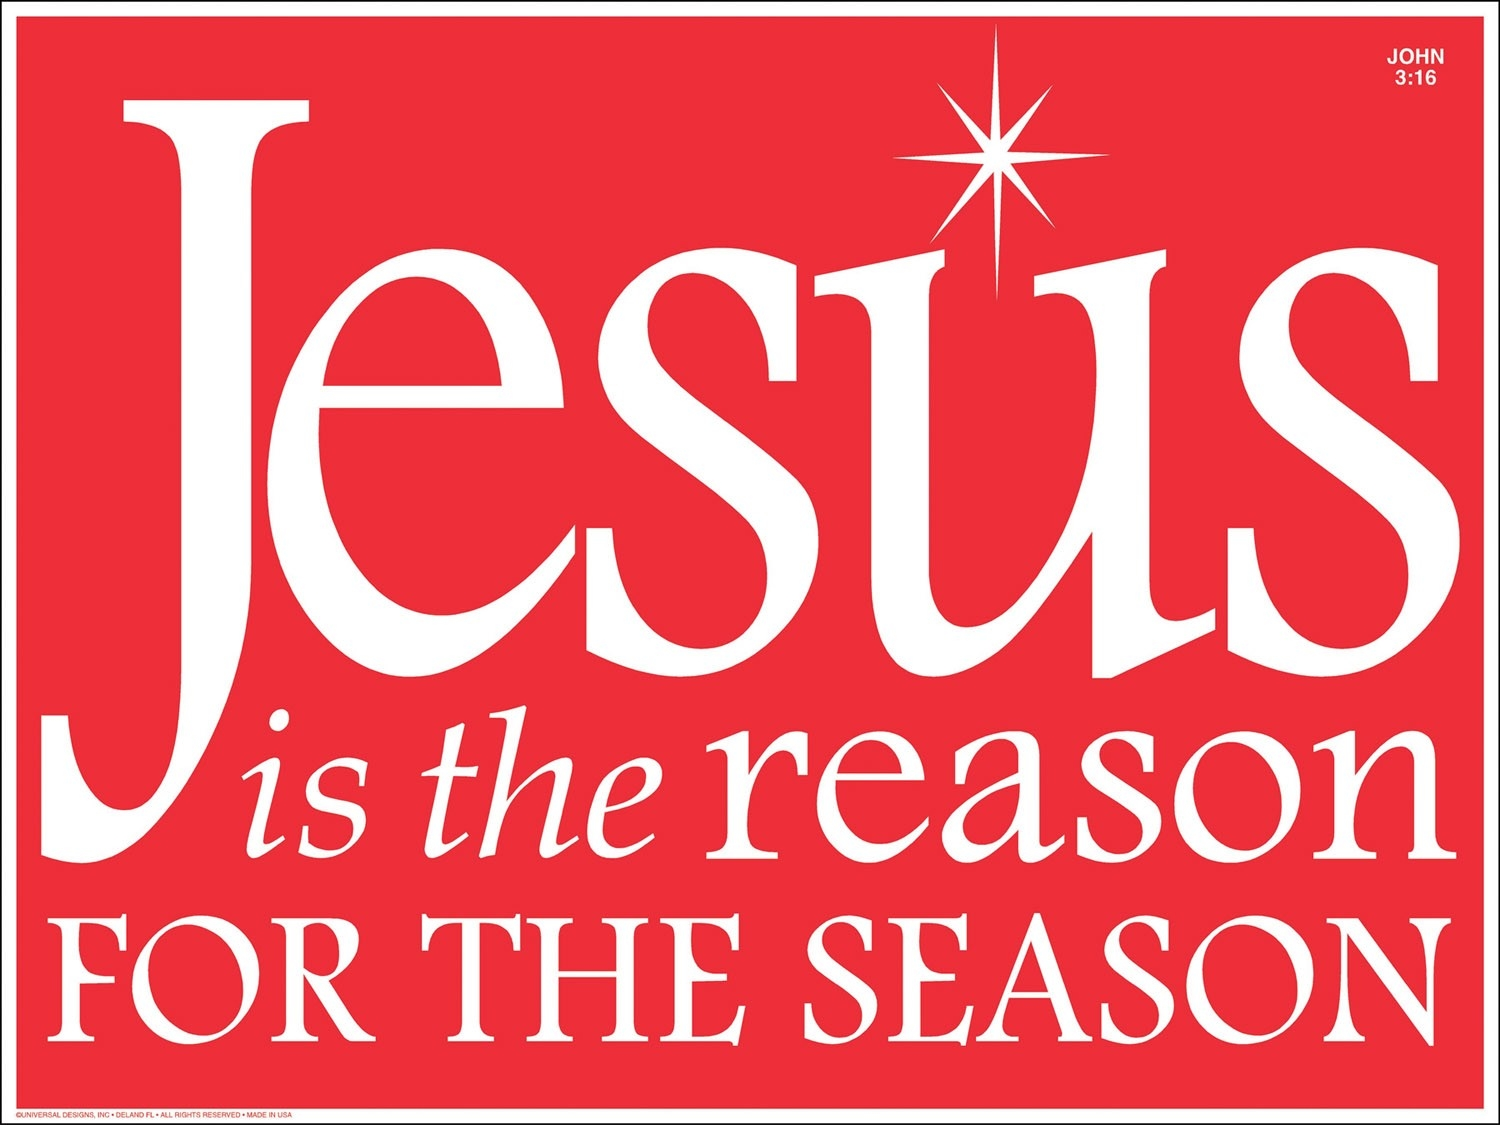 15 Christmas Quotes Religious: Jesus Is The Reason Pictures, Photos, And Images For